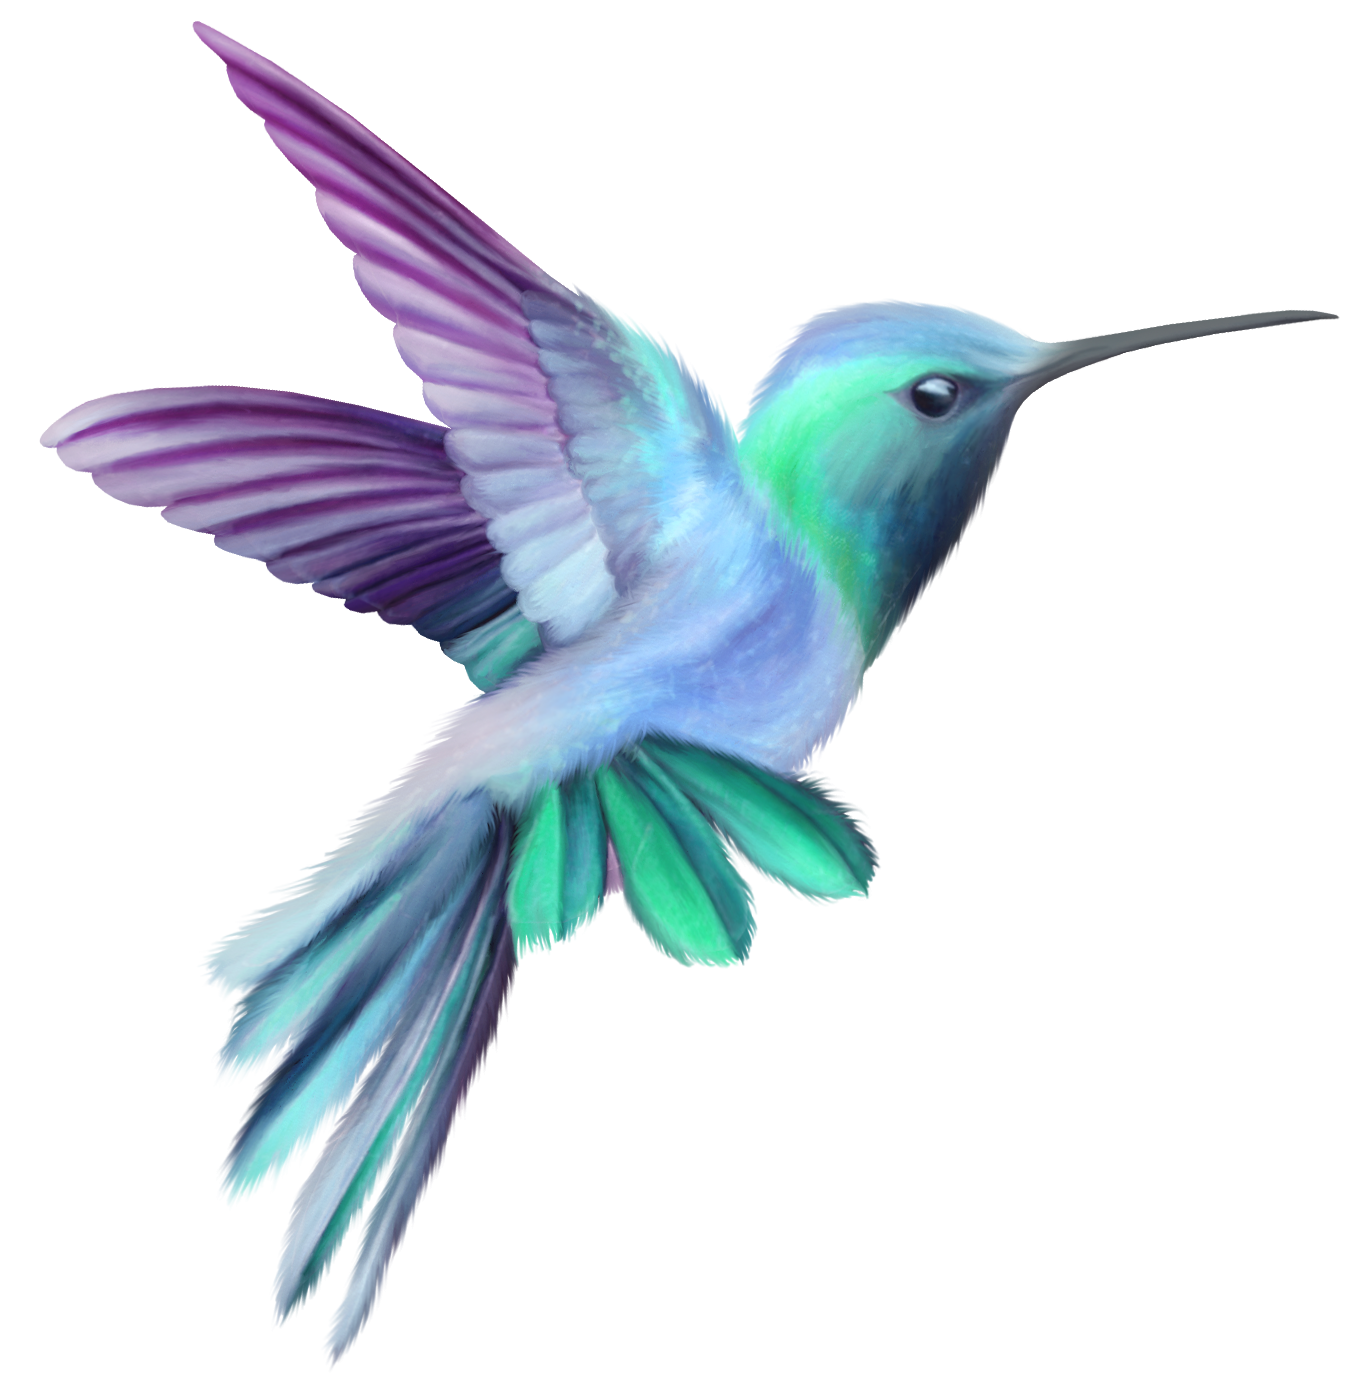 Clip art image gallery. Hummingbird transparent clipart black and white